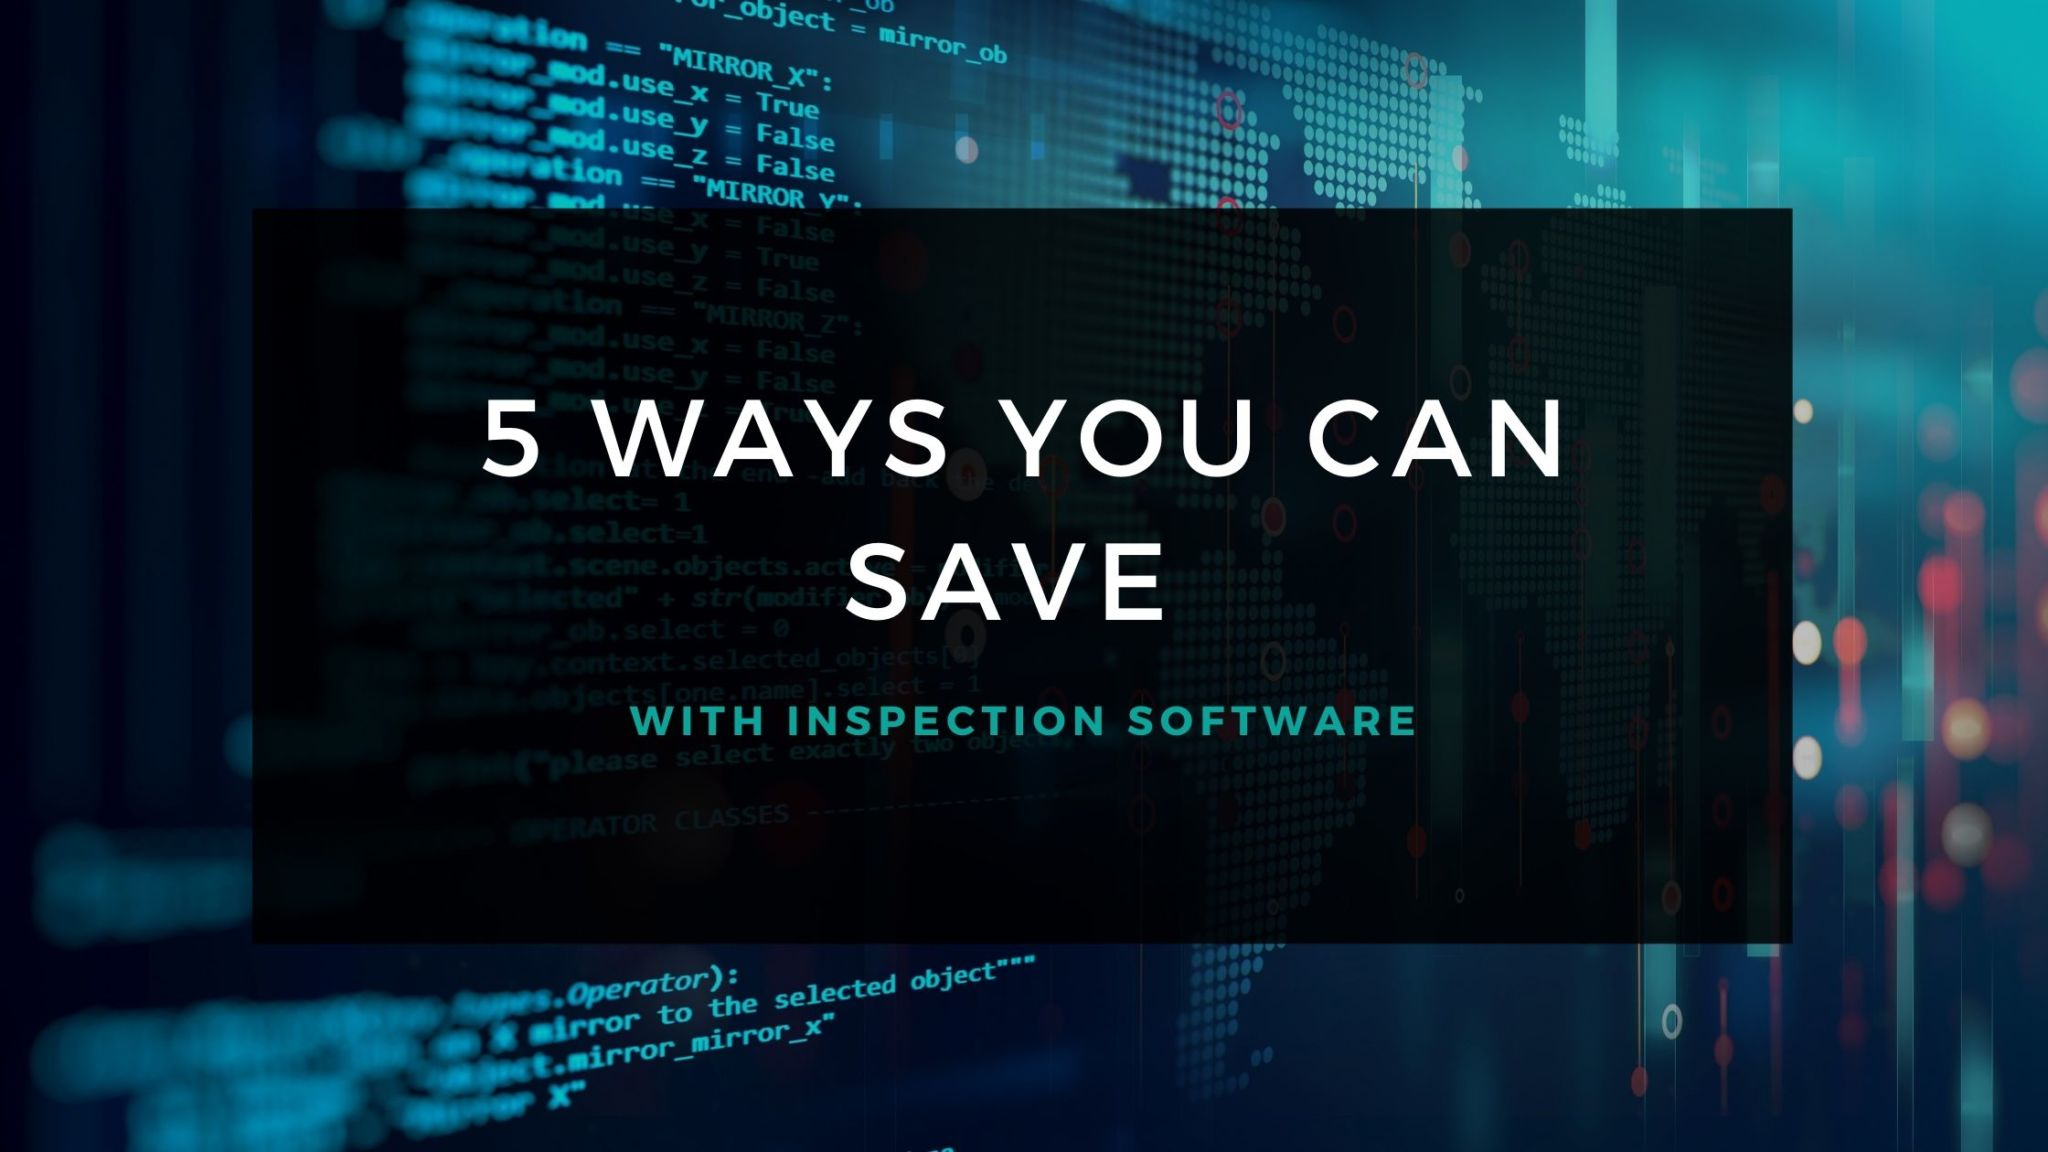 5 ways you can save with inspection software